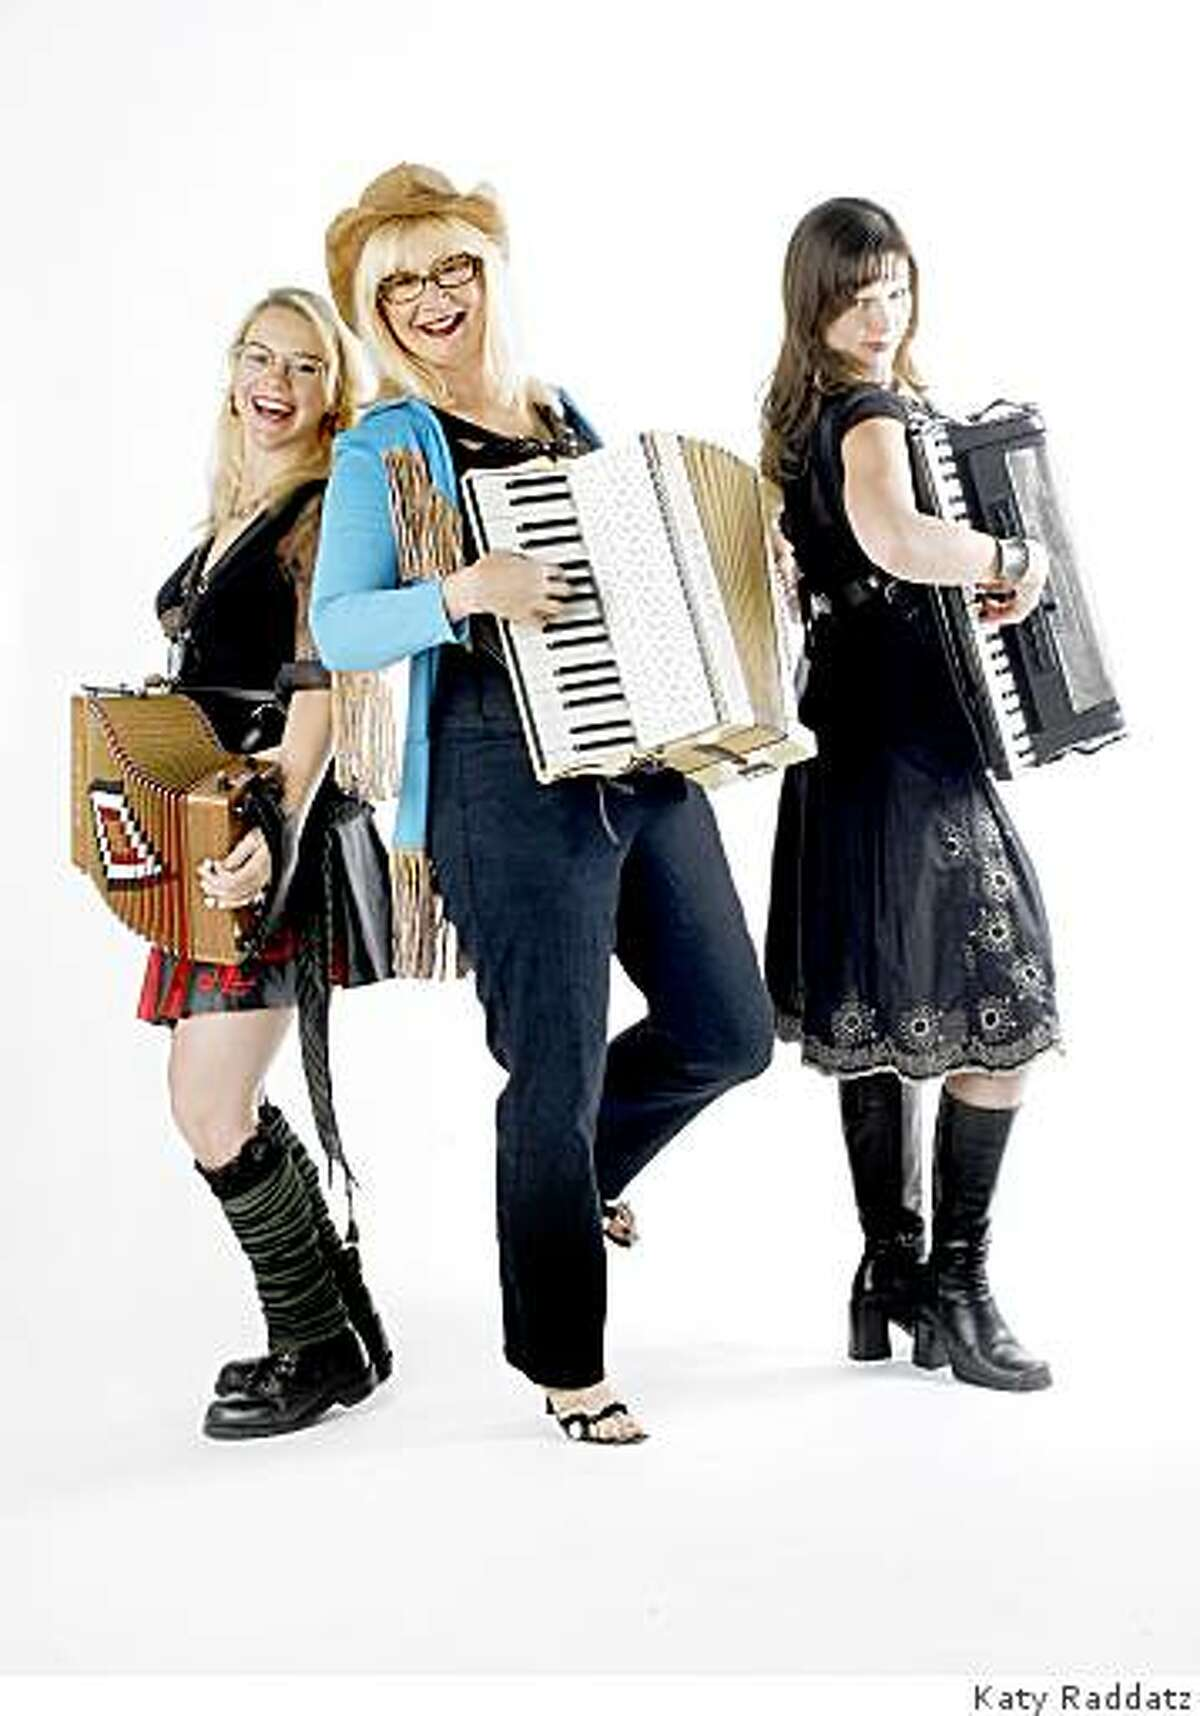 Participating in the Wild Women of the Accordion festival are (From Left to Right) Renee de la PradeBig Lou, Isabel Douglass